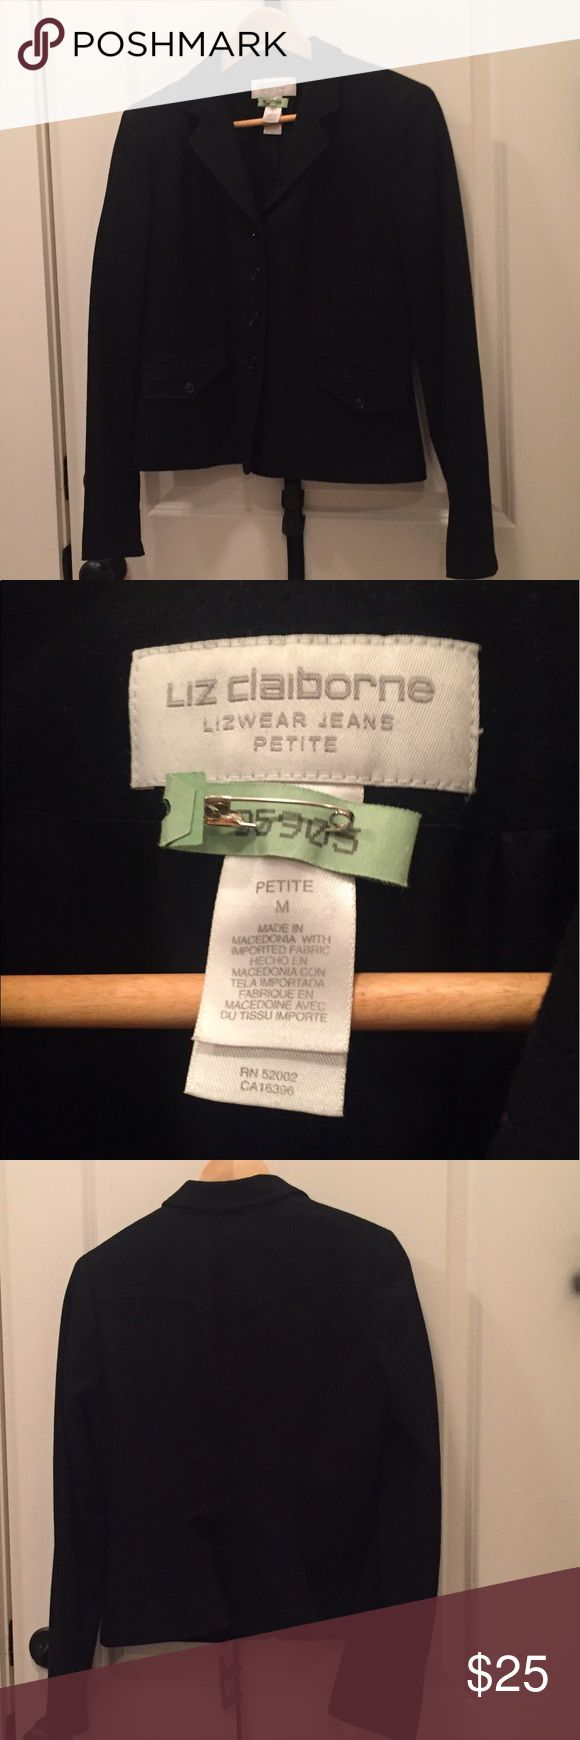 Liz Claiborne Petites Suit Jacket Black Liz Claiborne Petites Suit Jacket, Size Medium. 4 center front buttons. Two welt pockets with flaps at side. Back yoke. Shorter length suit jacket. Recently dry cleaned with dry cleaning tags. Smoke free home. Worn once. Liz Claiborne Jackets & Coats Blazers